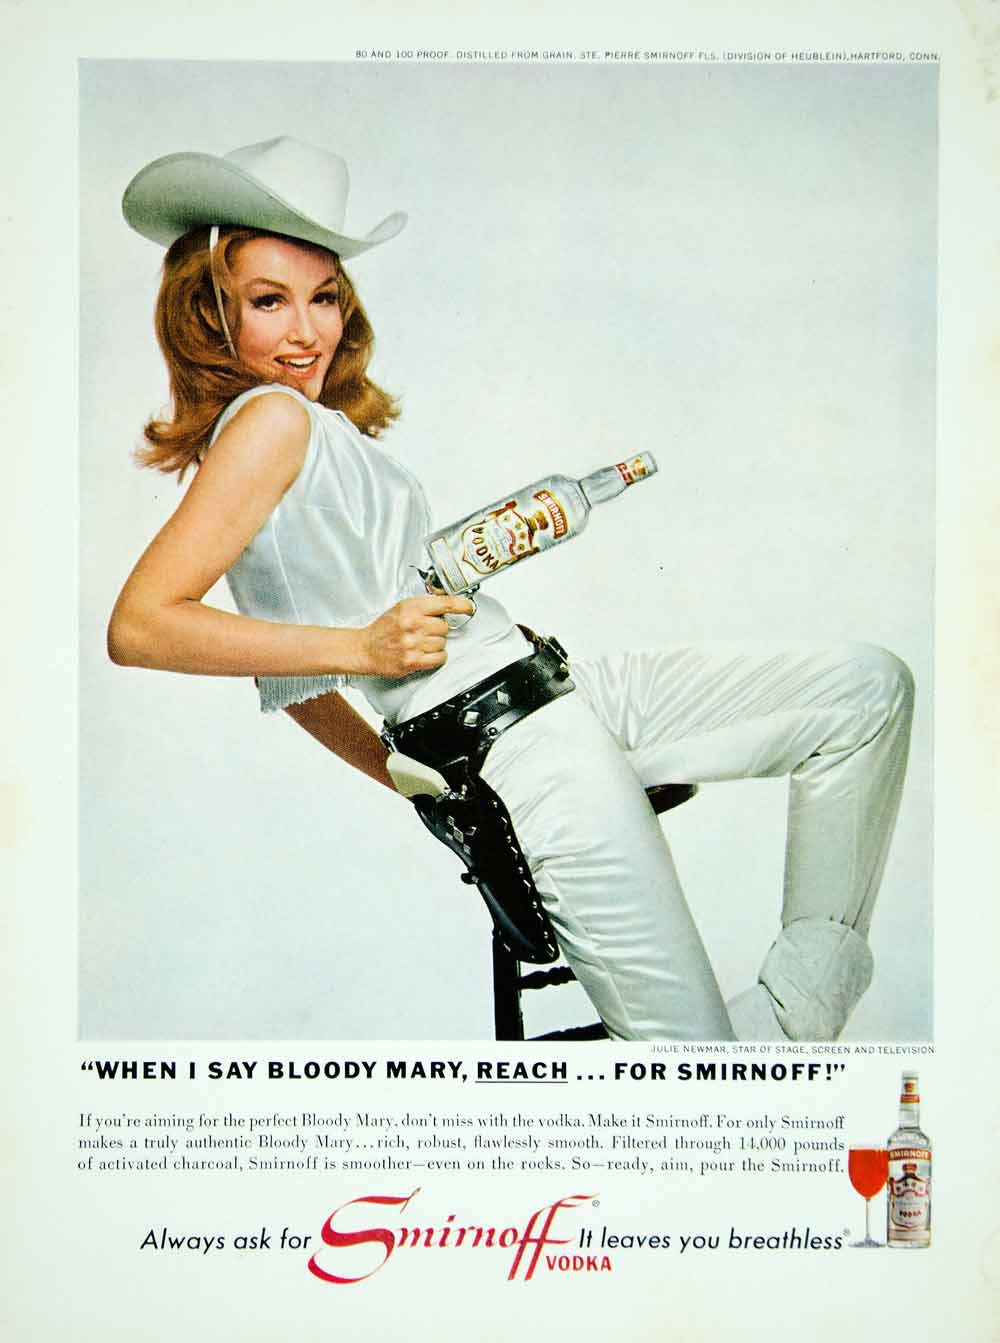 1966 Ad Vintage Smirnoff Vodka Alcohol Bloody Mary Julie Newmar Actress YMMA3